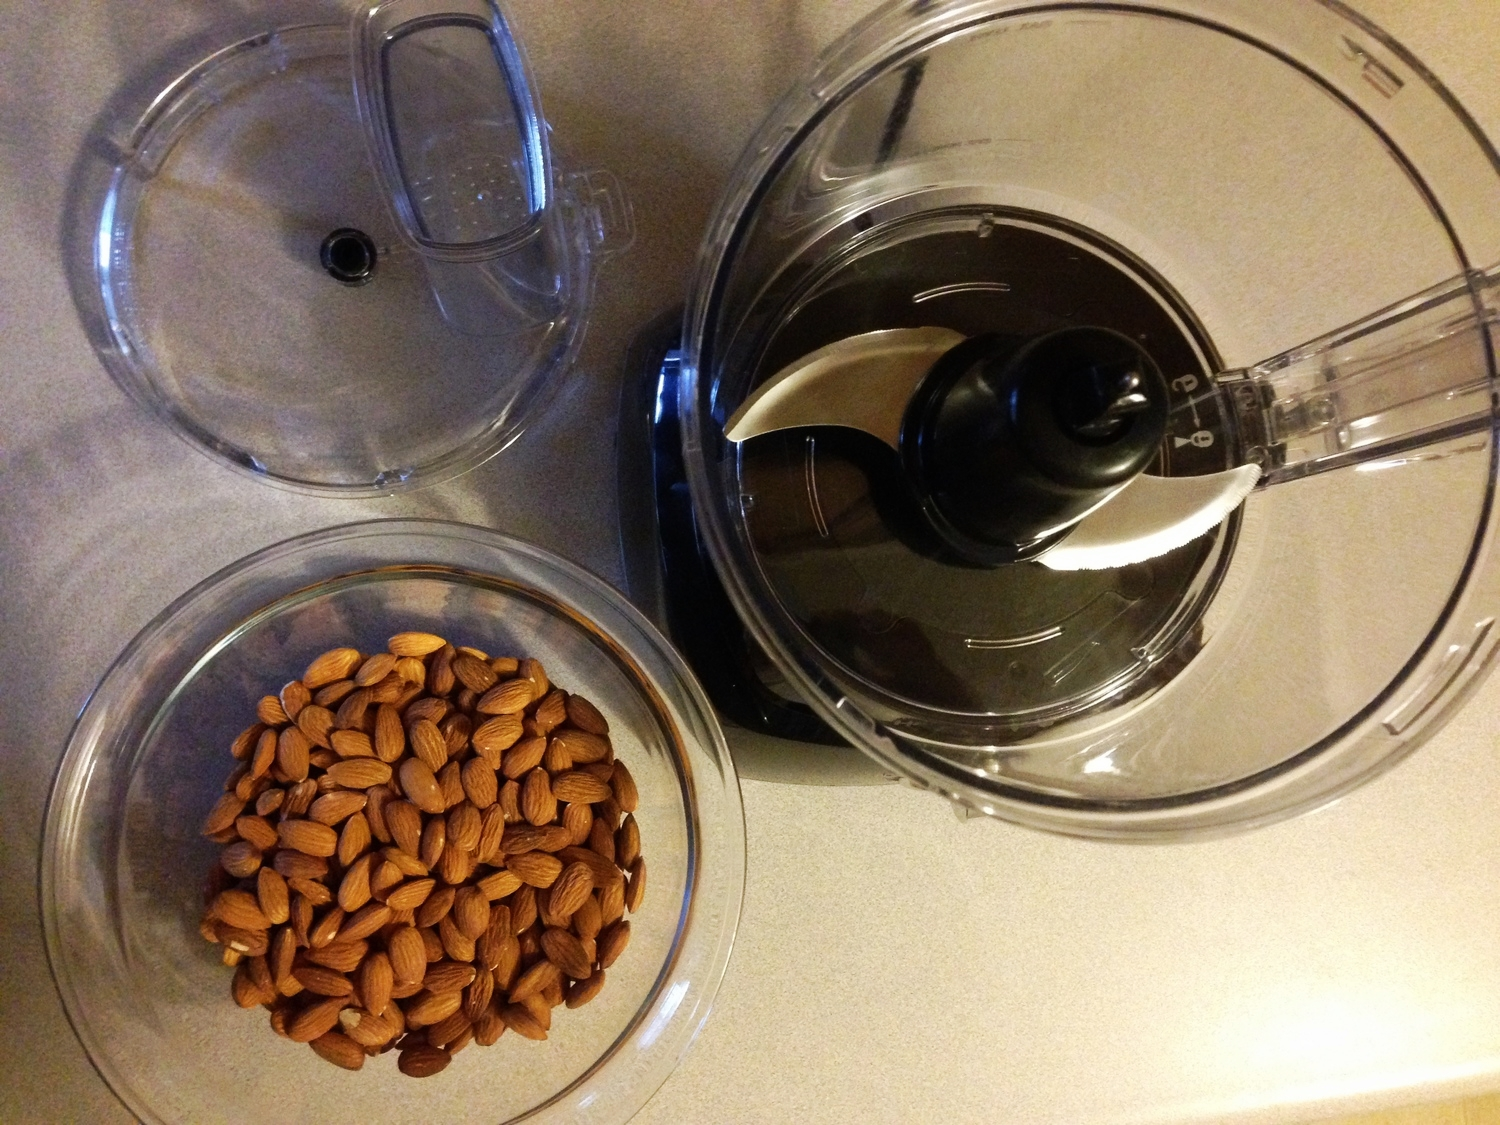 Food processer and almonds for making homemade healthy nut butter - health food how-to!